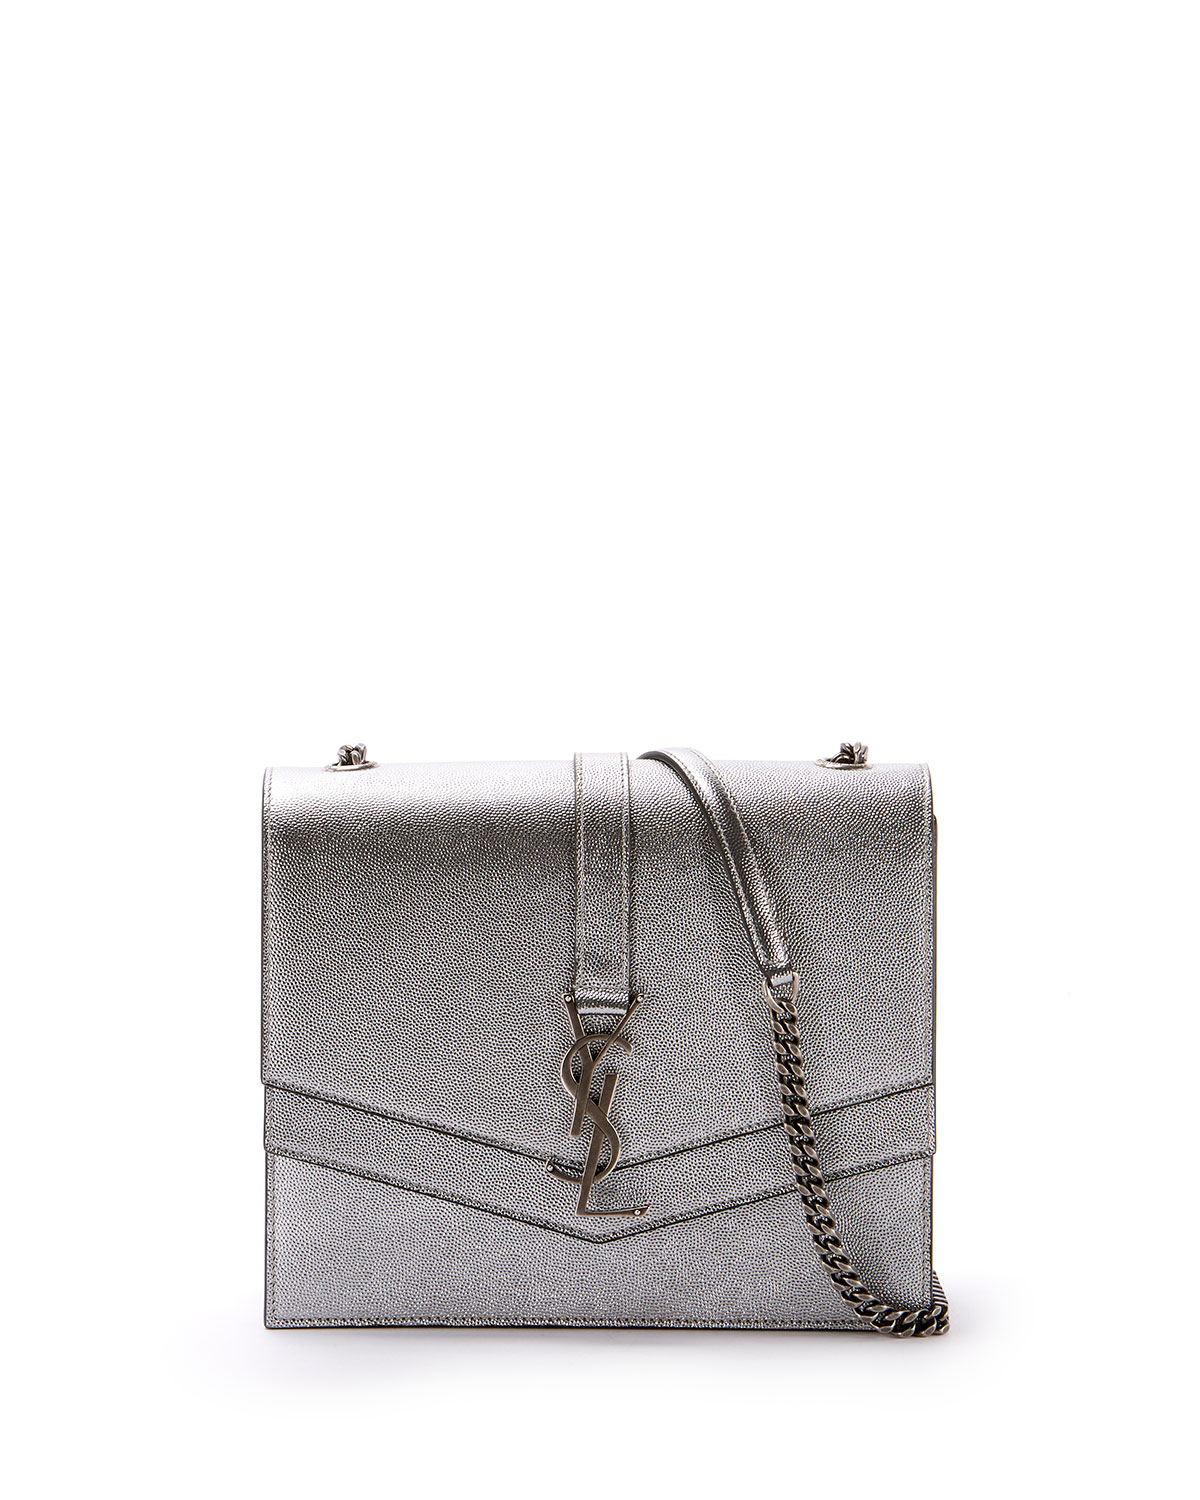 49b3f4bec19c Saint LaurentSulpice Medium YSL Monogram Triple V-Flap Metallic Leather  Crossbody Bag